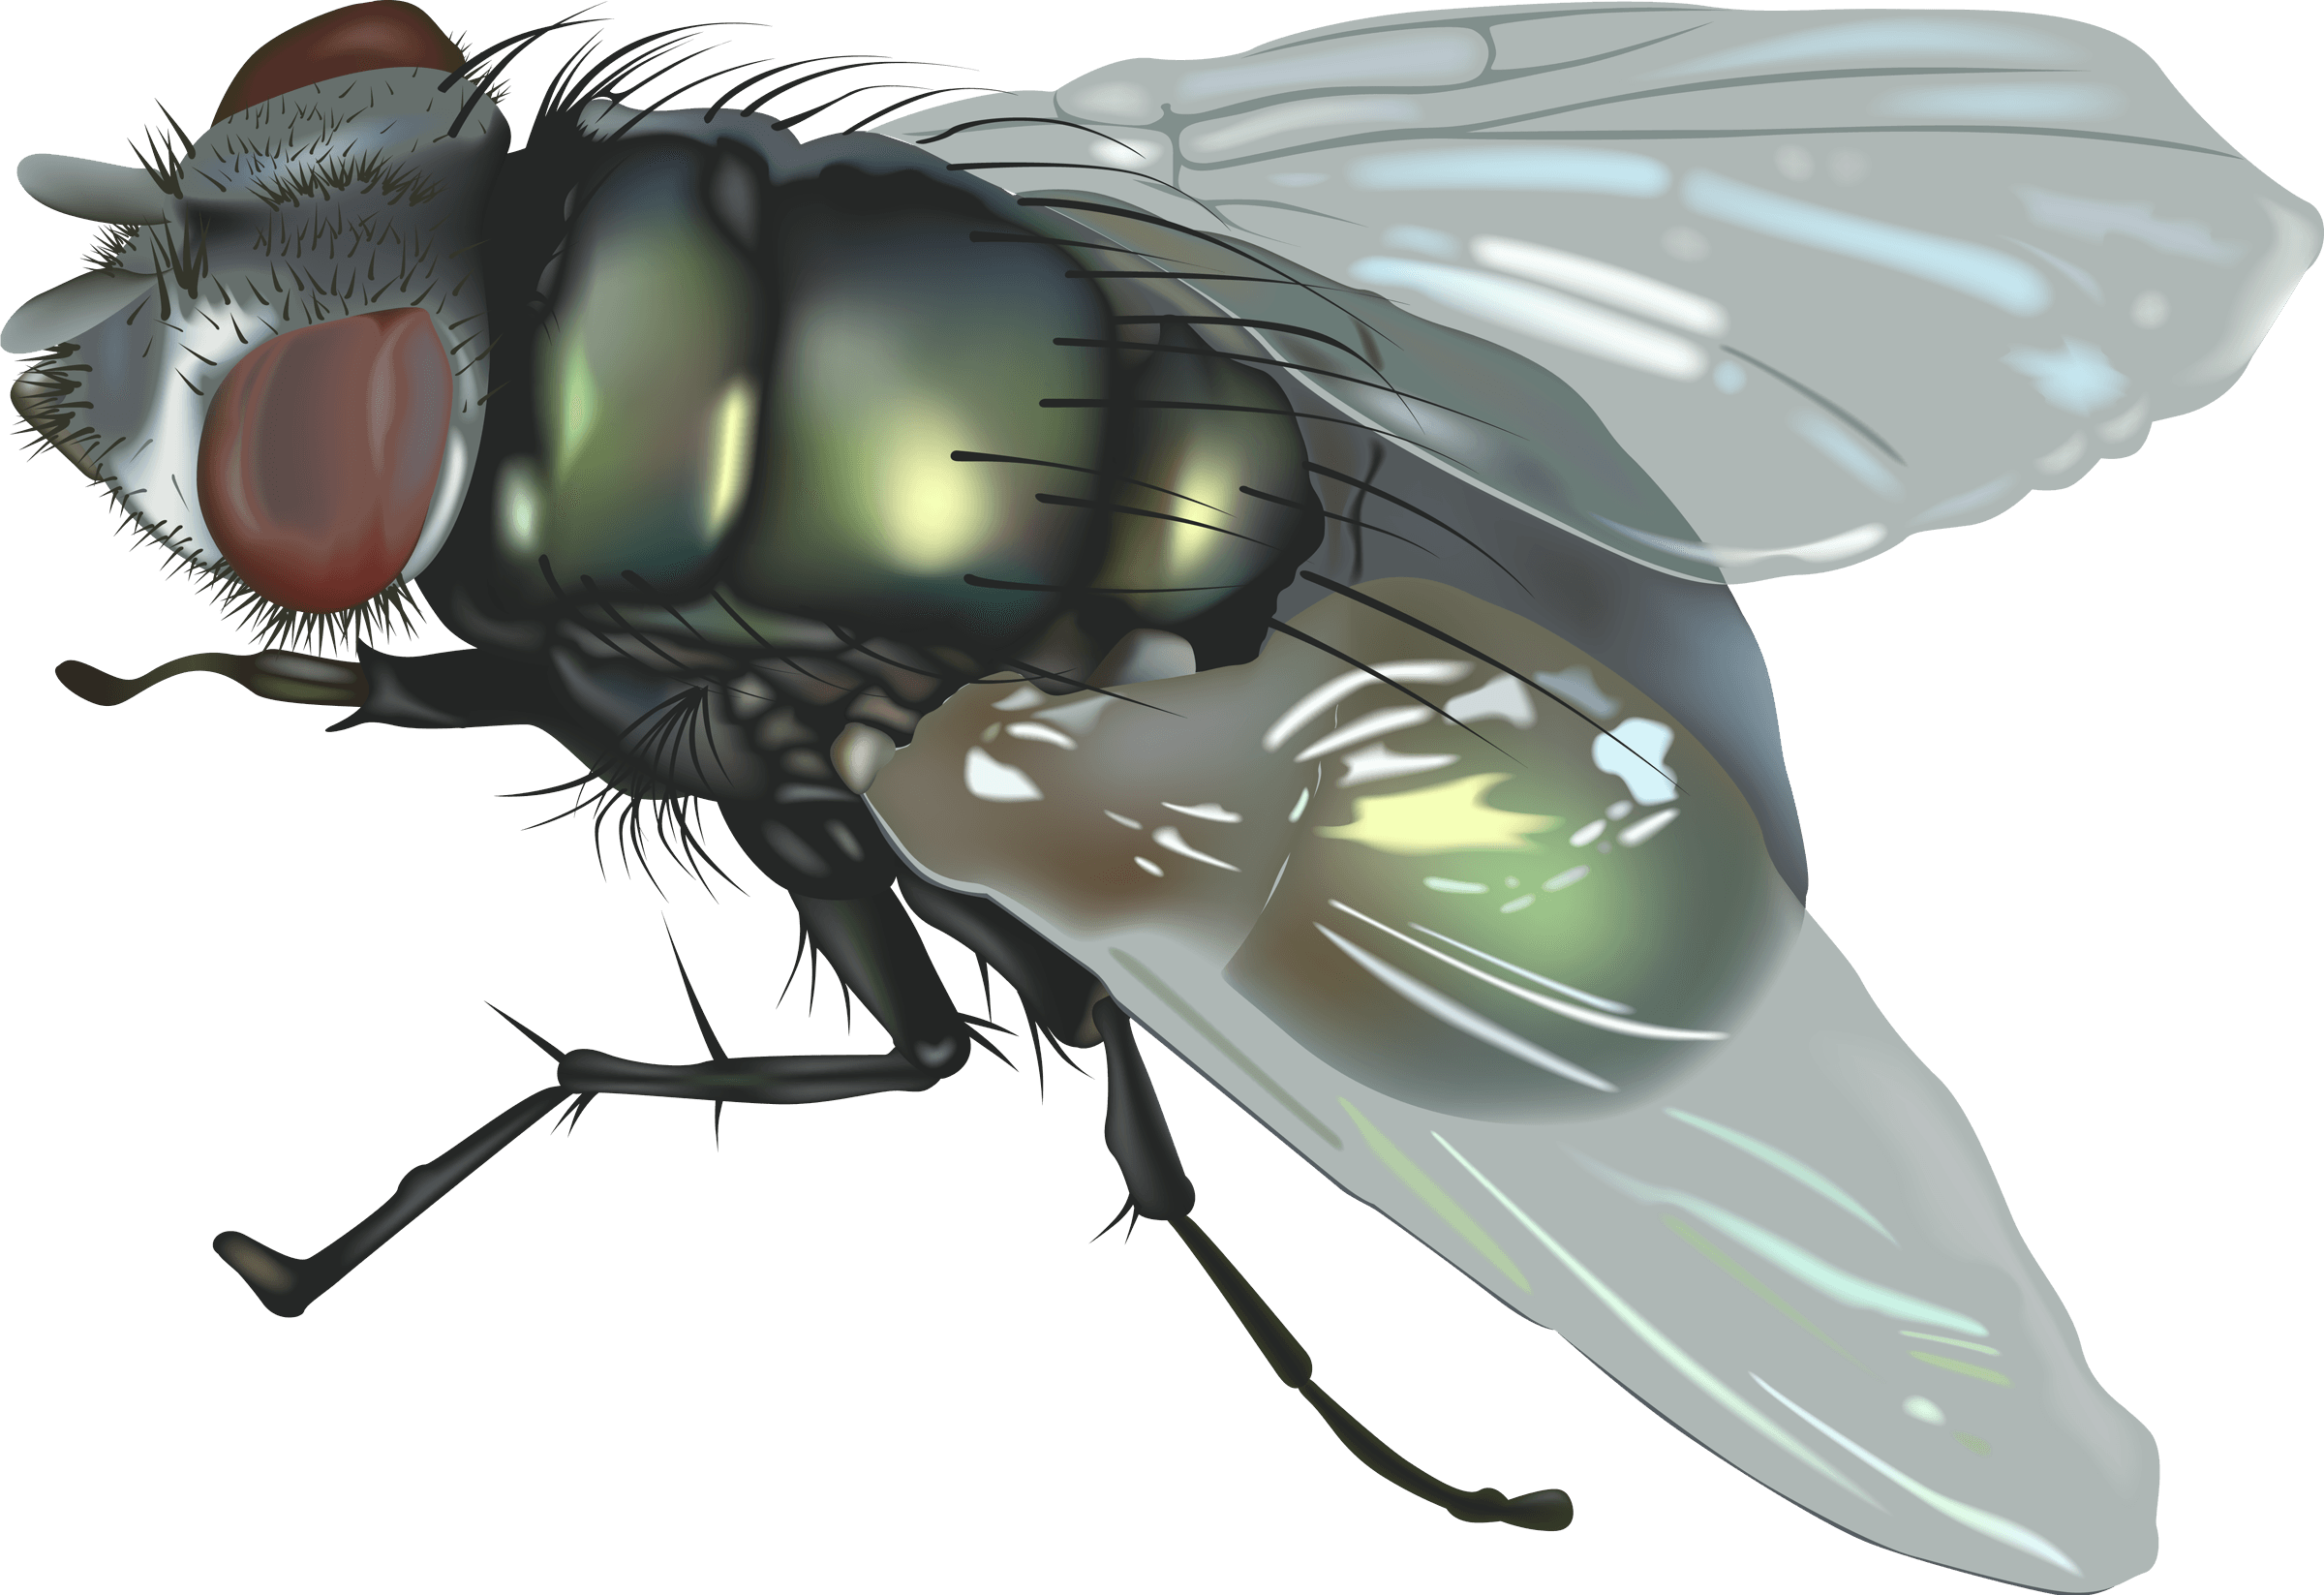 Download PNG image - Fly Png Image - Fly PNG